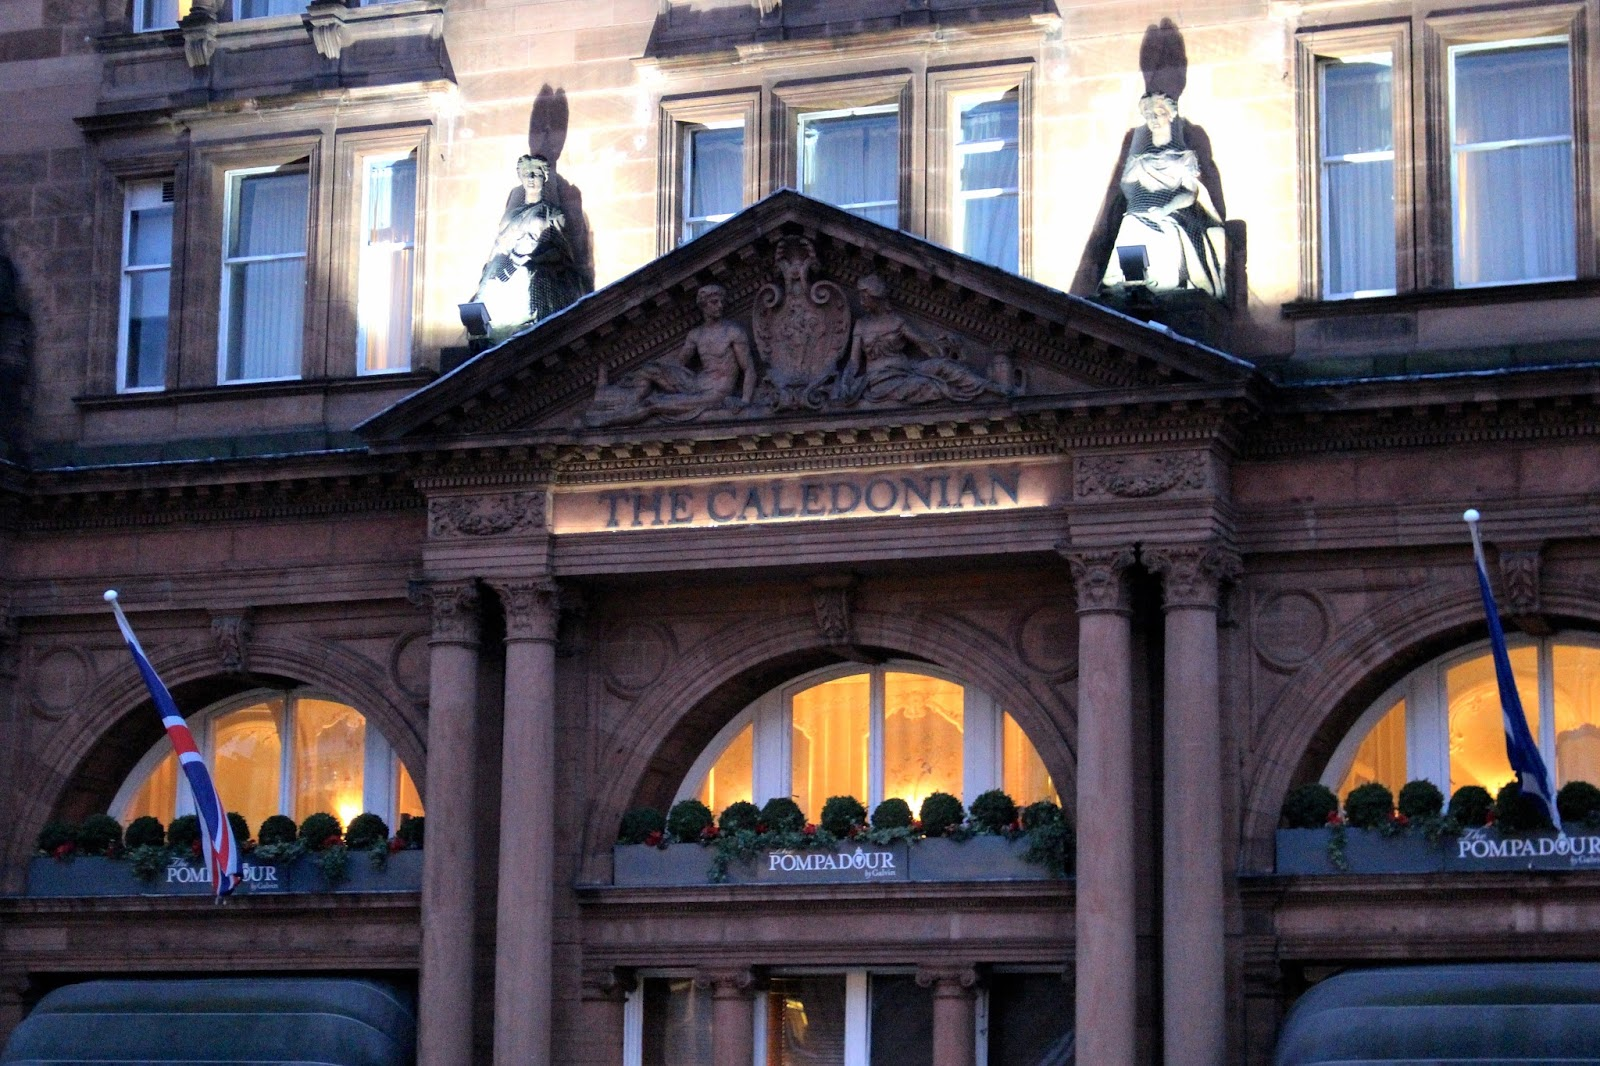 waldorf astoria the caledonian hotel facade